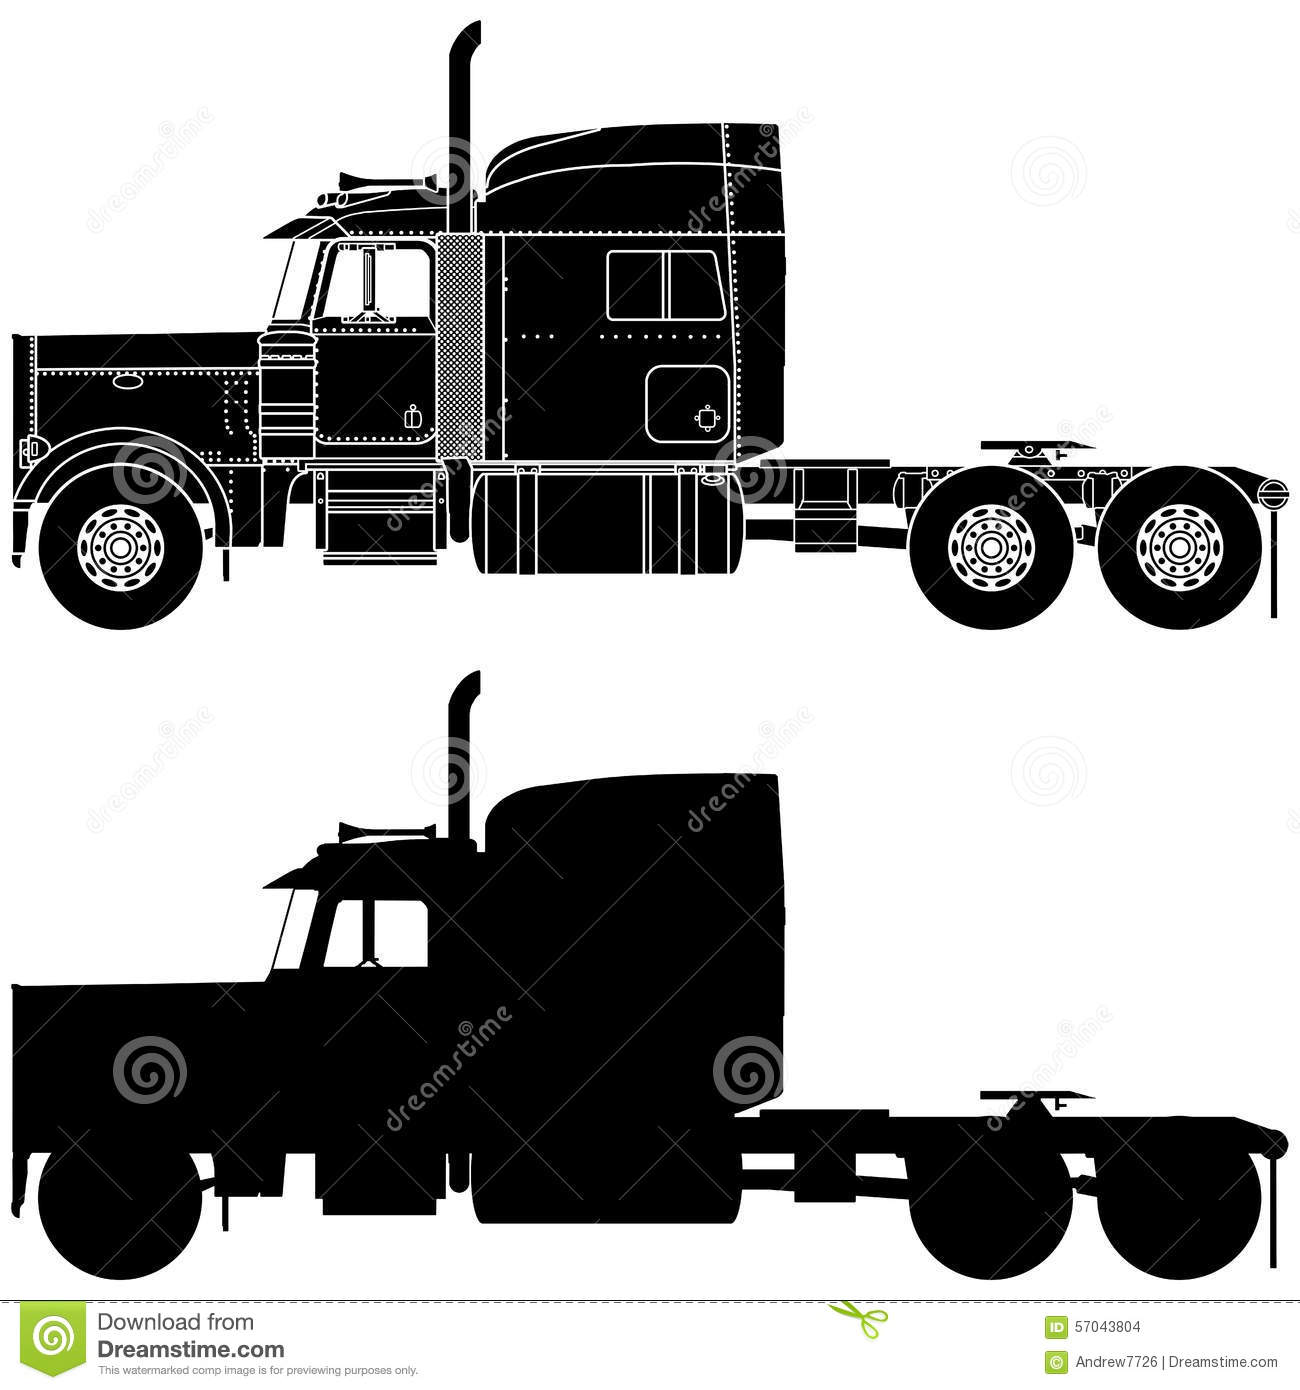 Movie Trucks moreover Royalty Free Stock Images Semi Trailer Truck Image18053929 besides I0000lim 0Xf2Tp8 likewise Royalty Free Stock Images Semi Trailer Truck Modern Light Background Image33212749 furthermore Light Up Rims For Motorcycle. on red semi truck